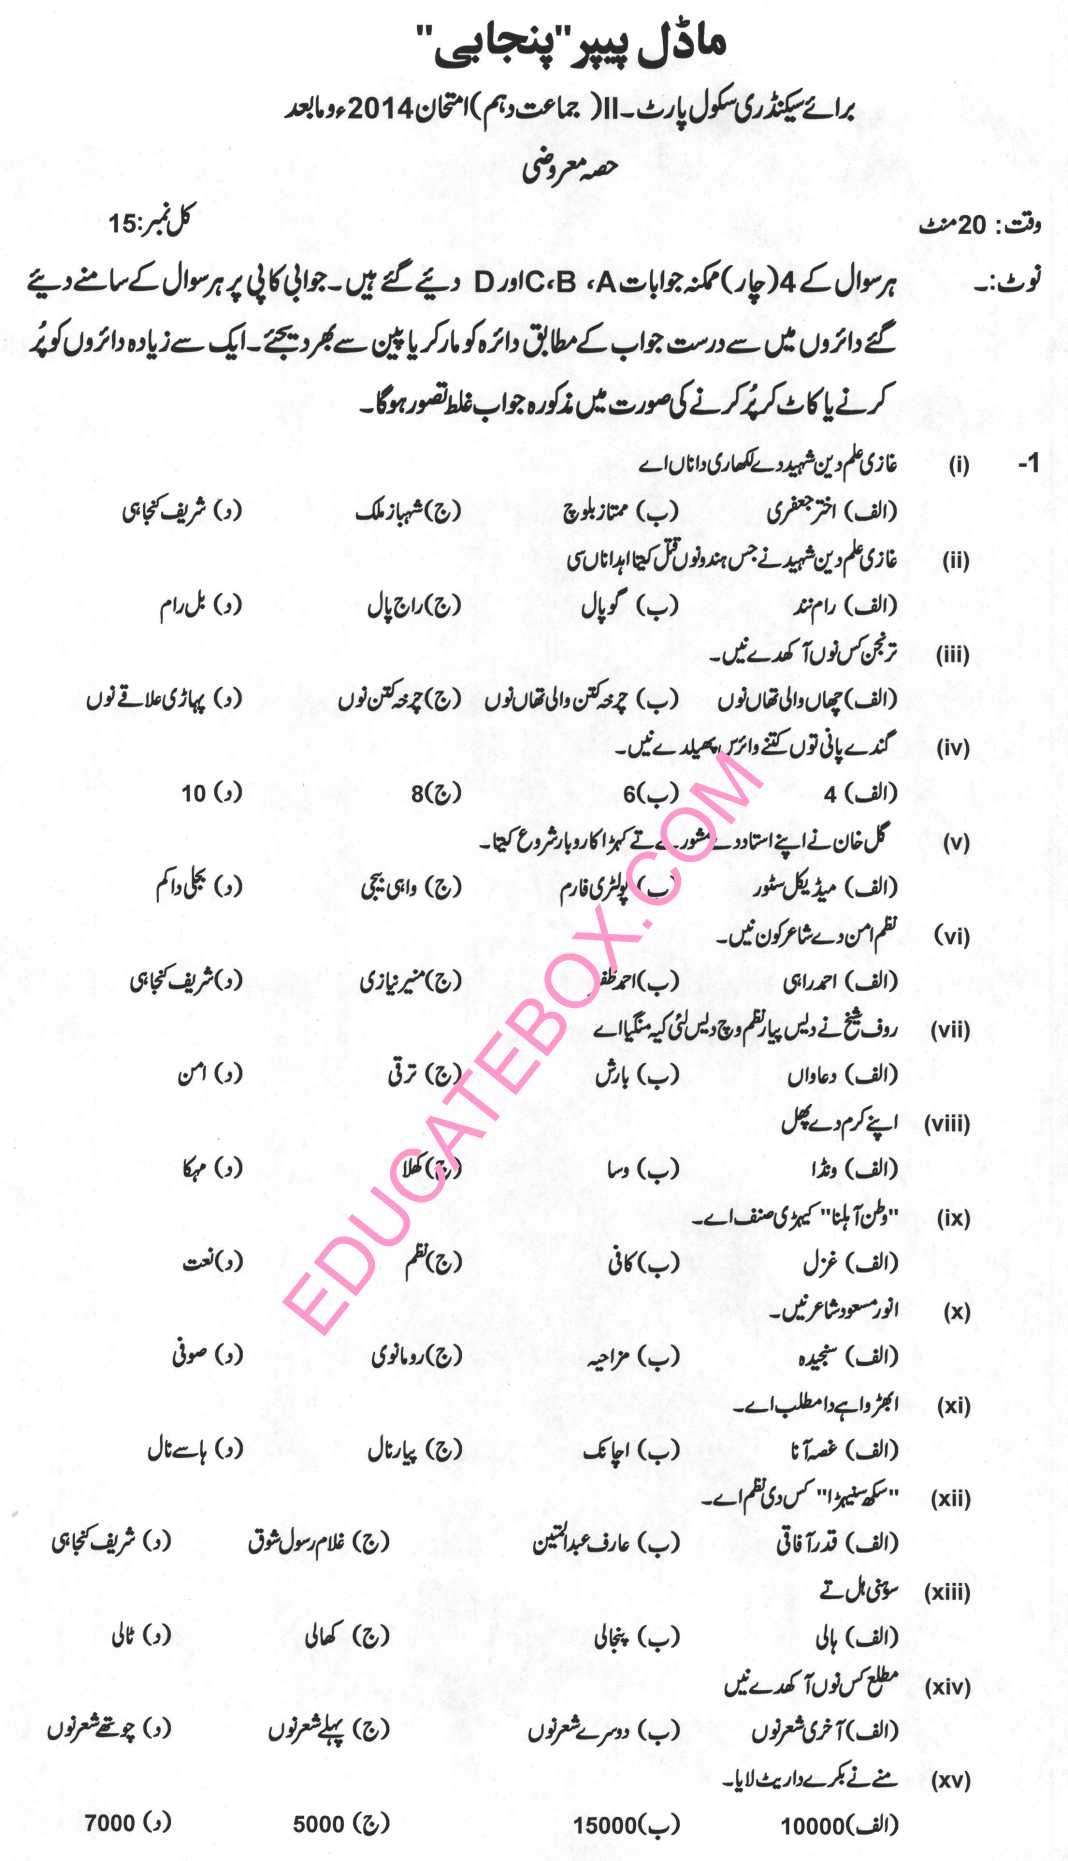 Model Paper 10th Class Punjabi Objective Type Session 2012-2014